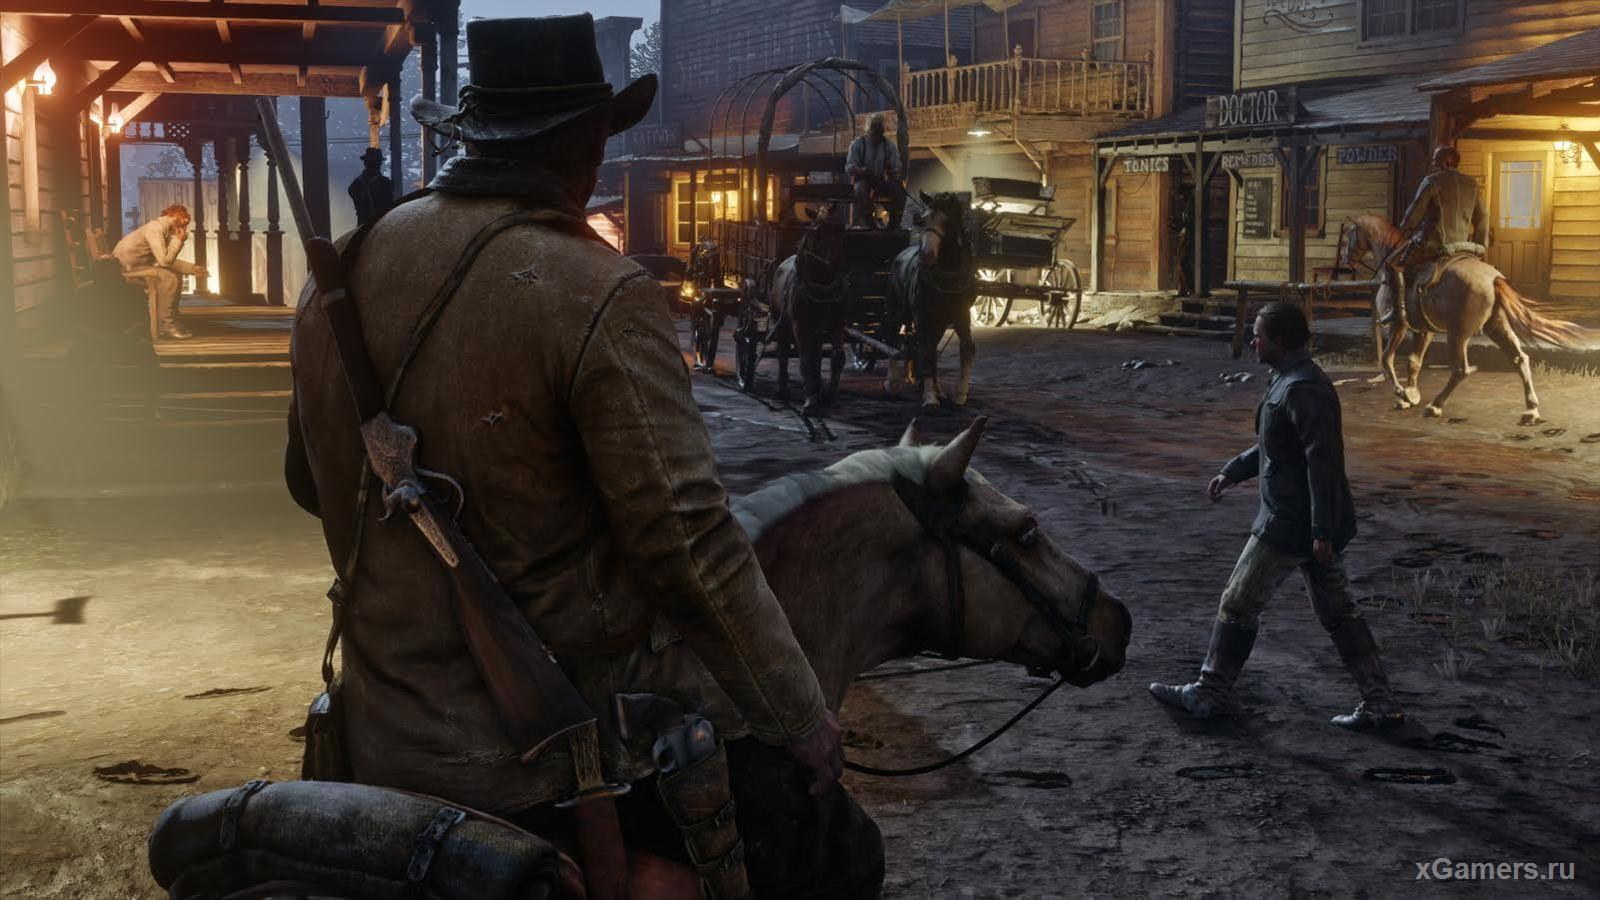 Where can I find cheat codes in the game RDR 2